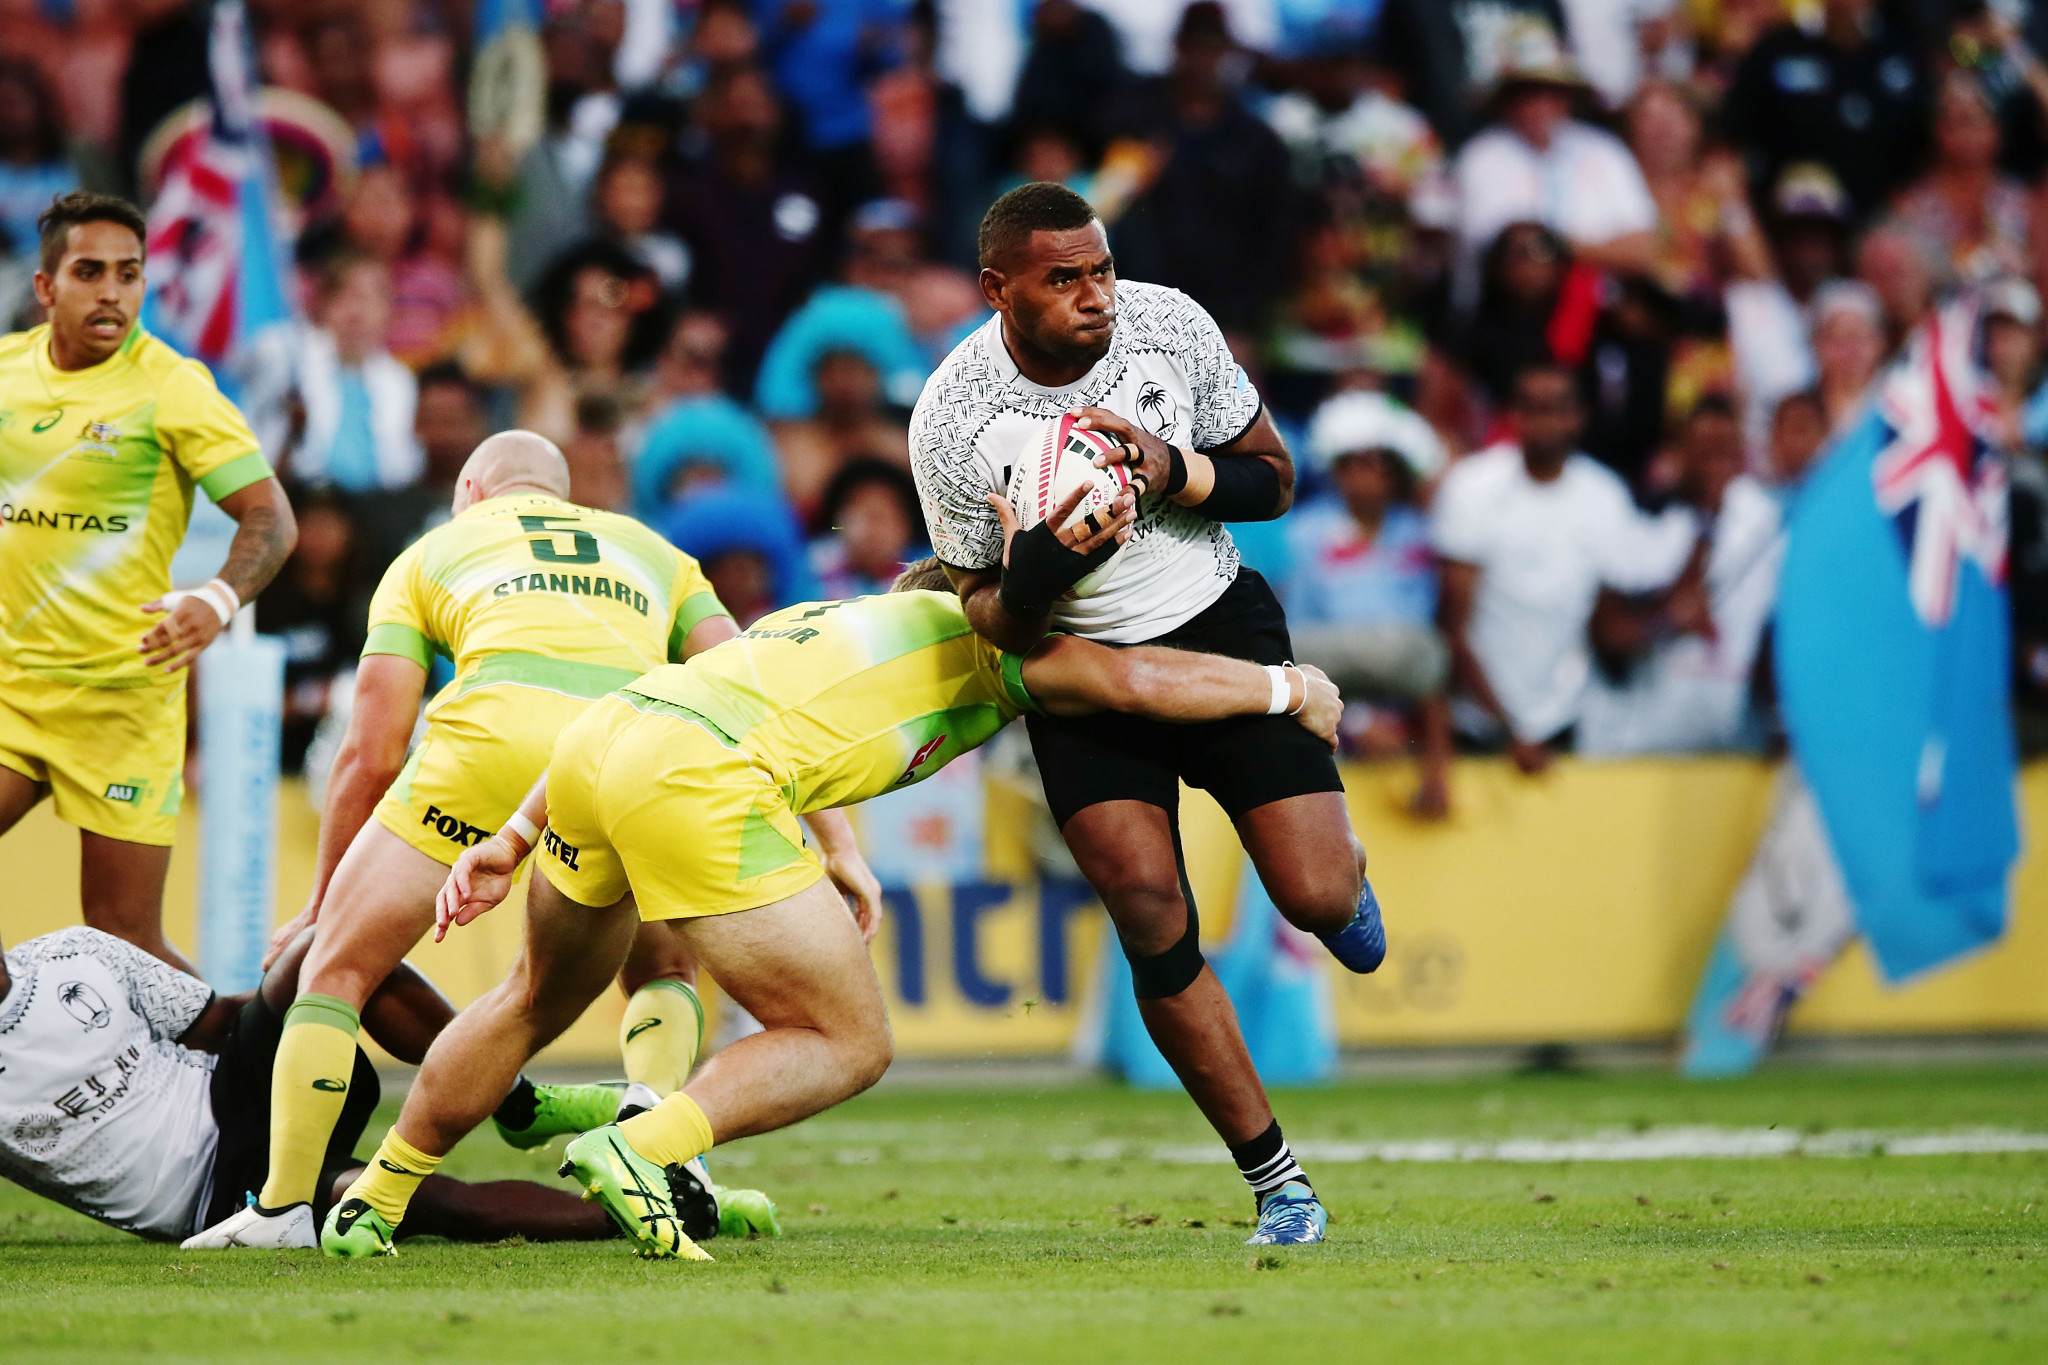 Olympic rugby sevens champion rules himself out of postponed Tokyo 2020